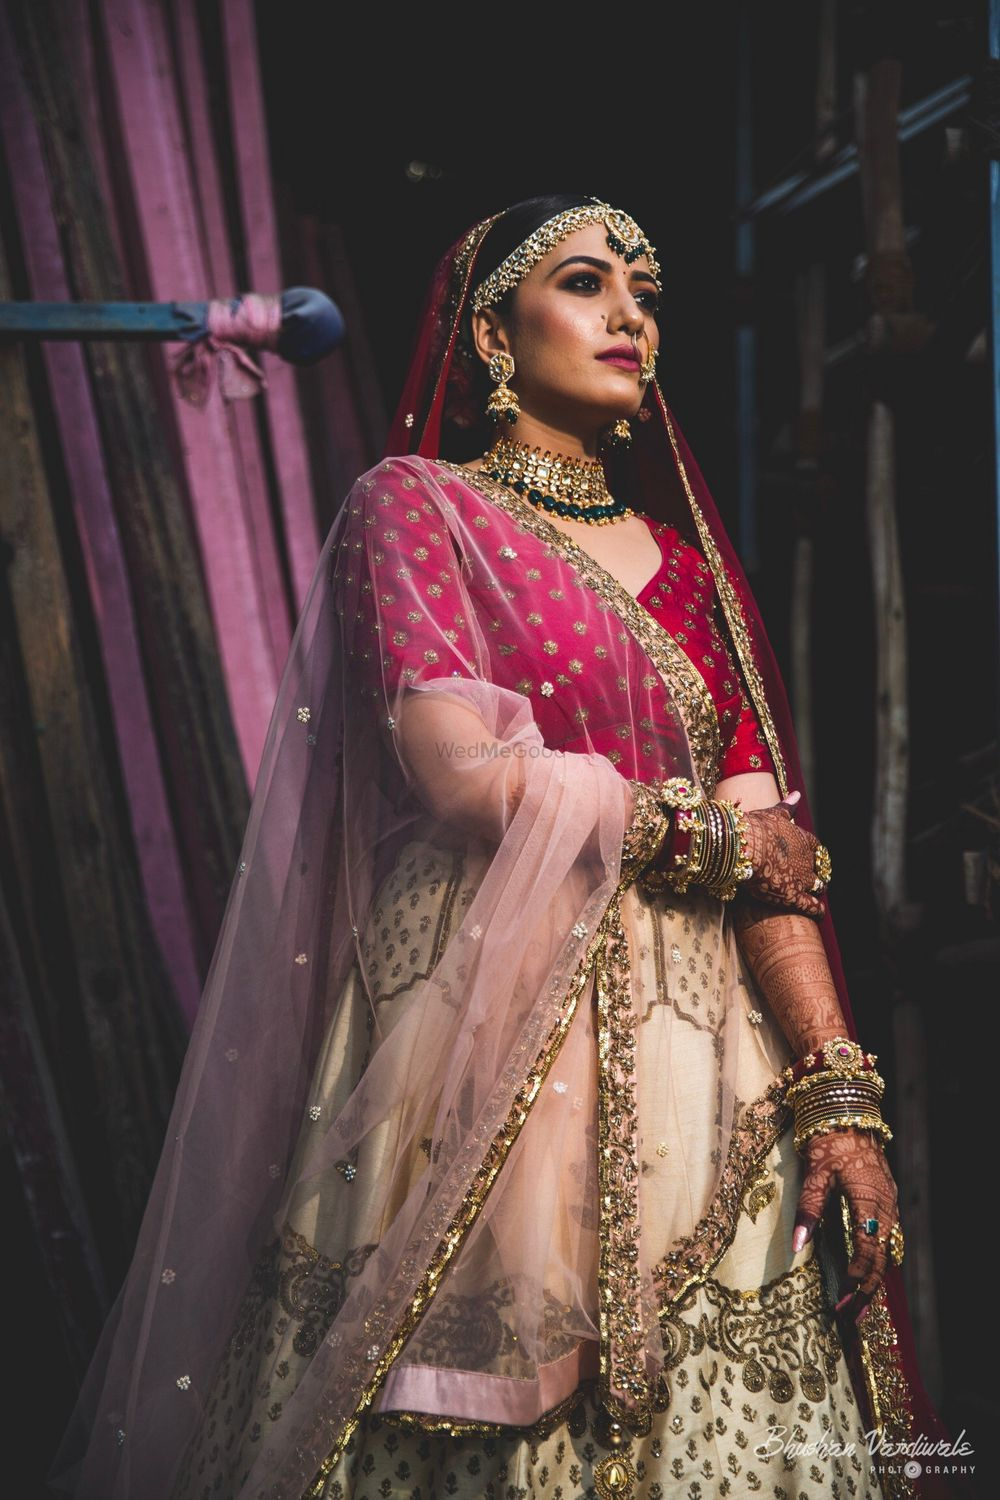 Photo of A bride in red and white lehenga